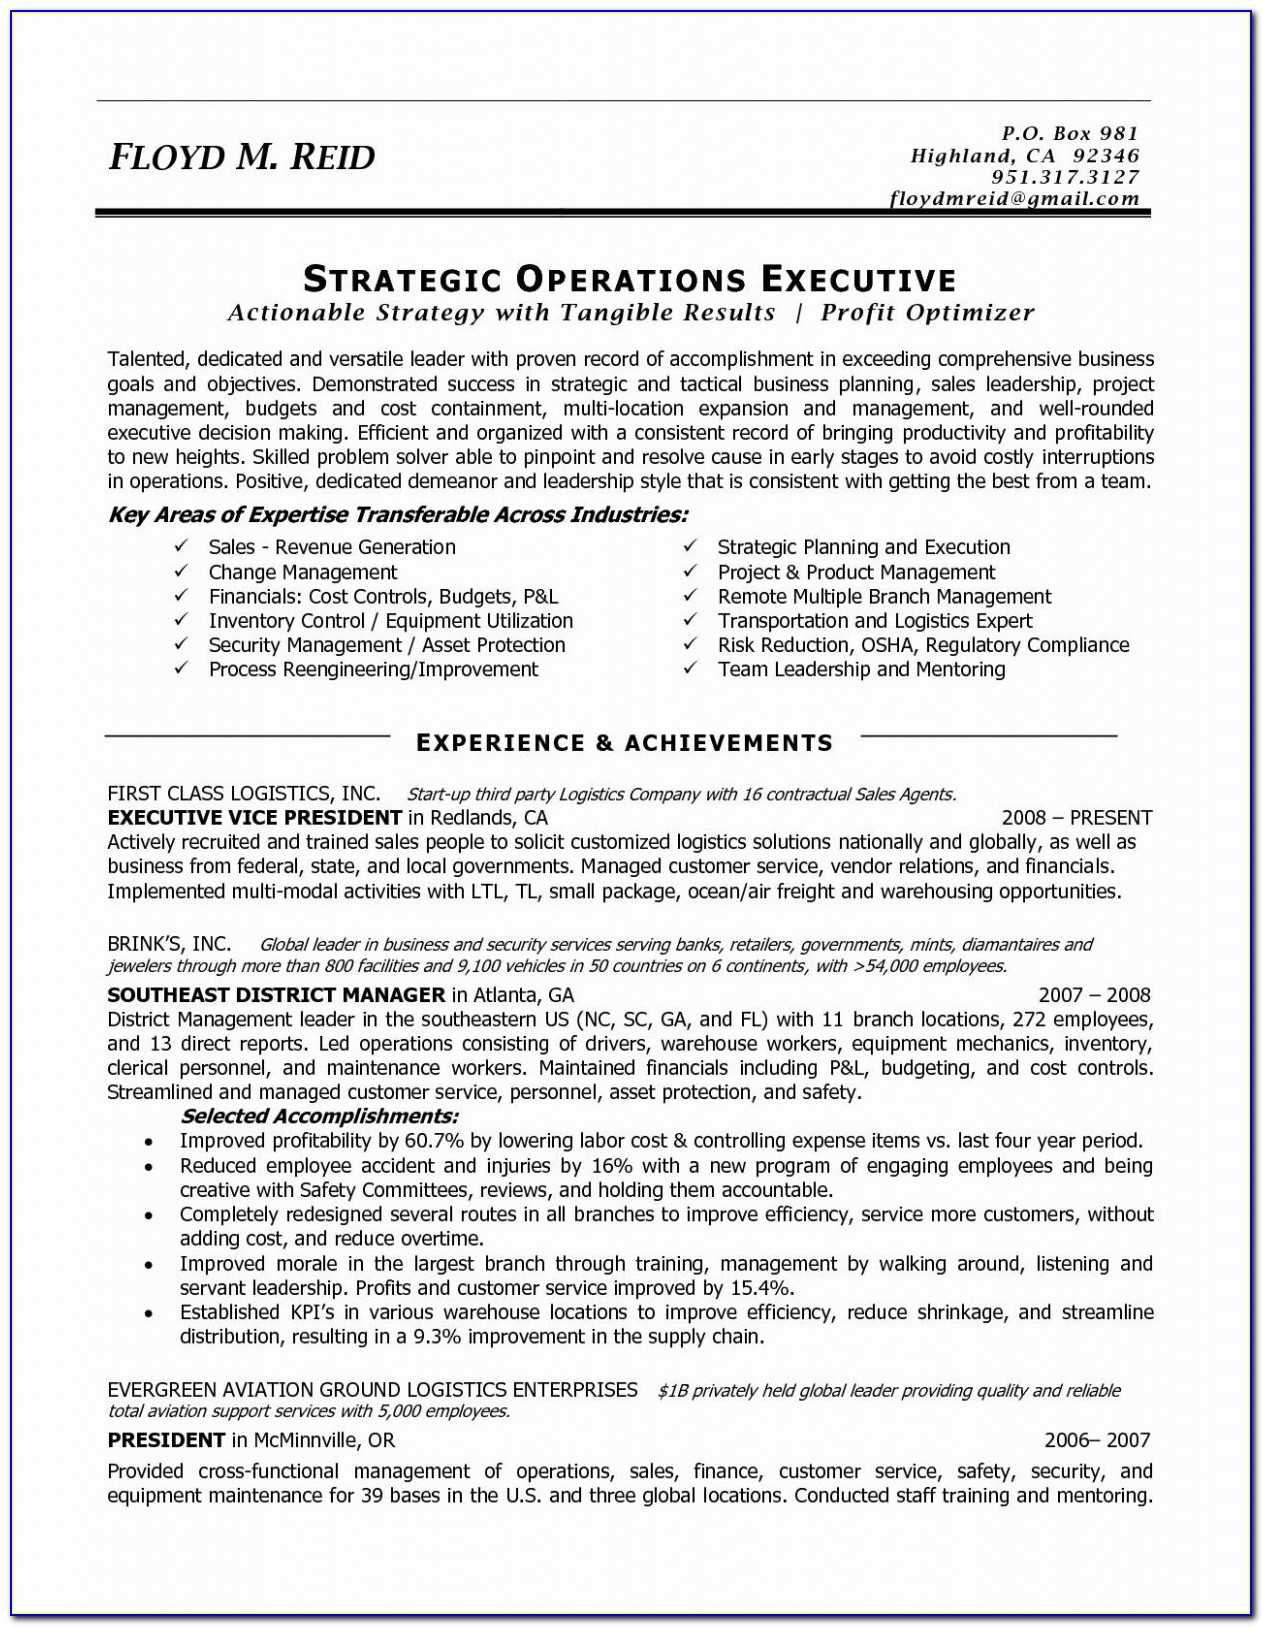 Fedex Resume Paper Inspirational Warehouse Experience Resume ? Resumes Project